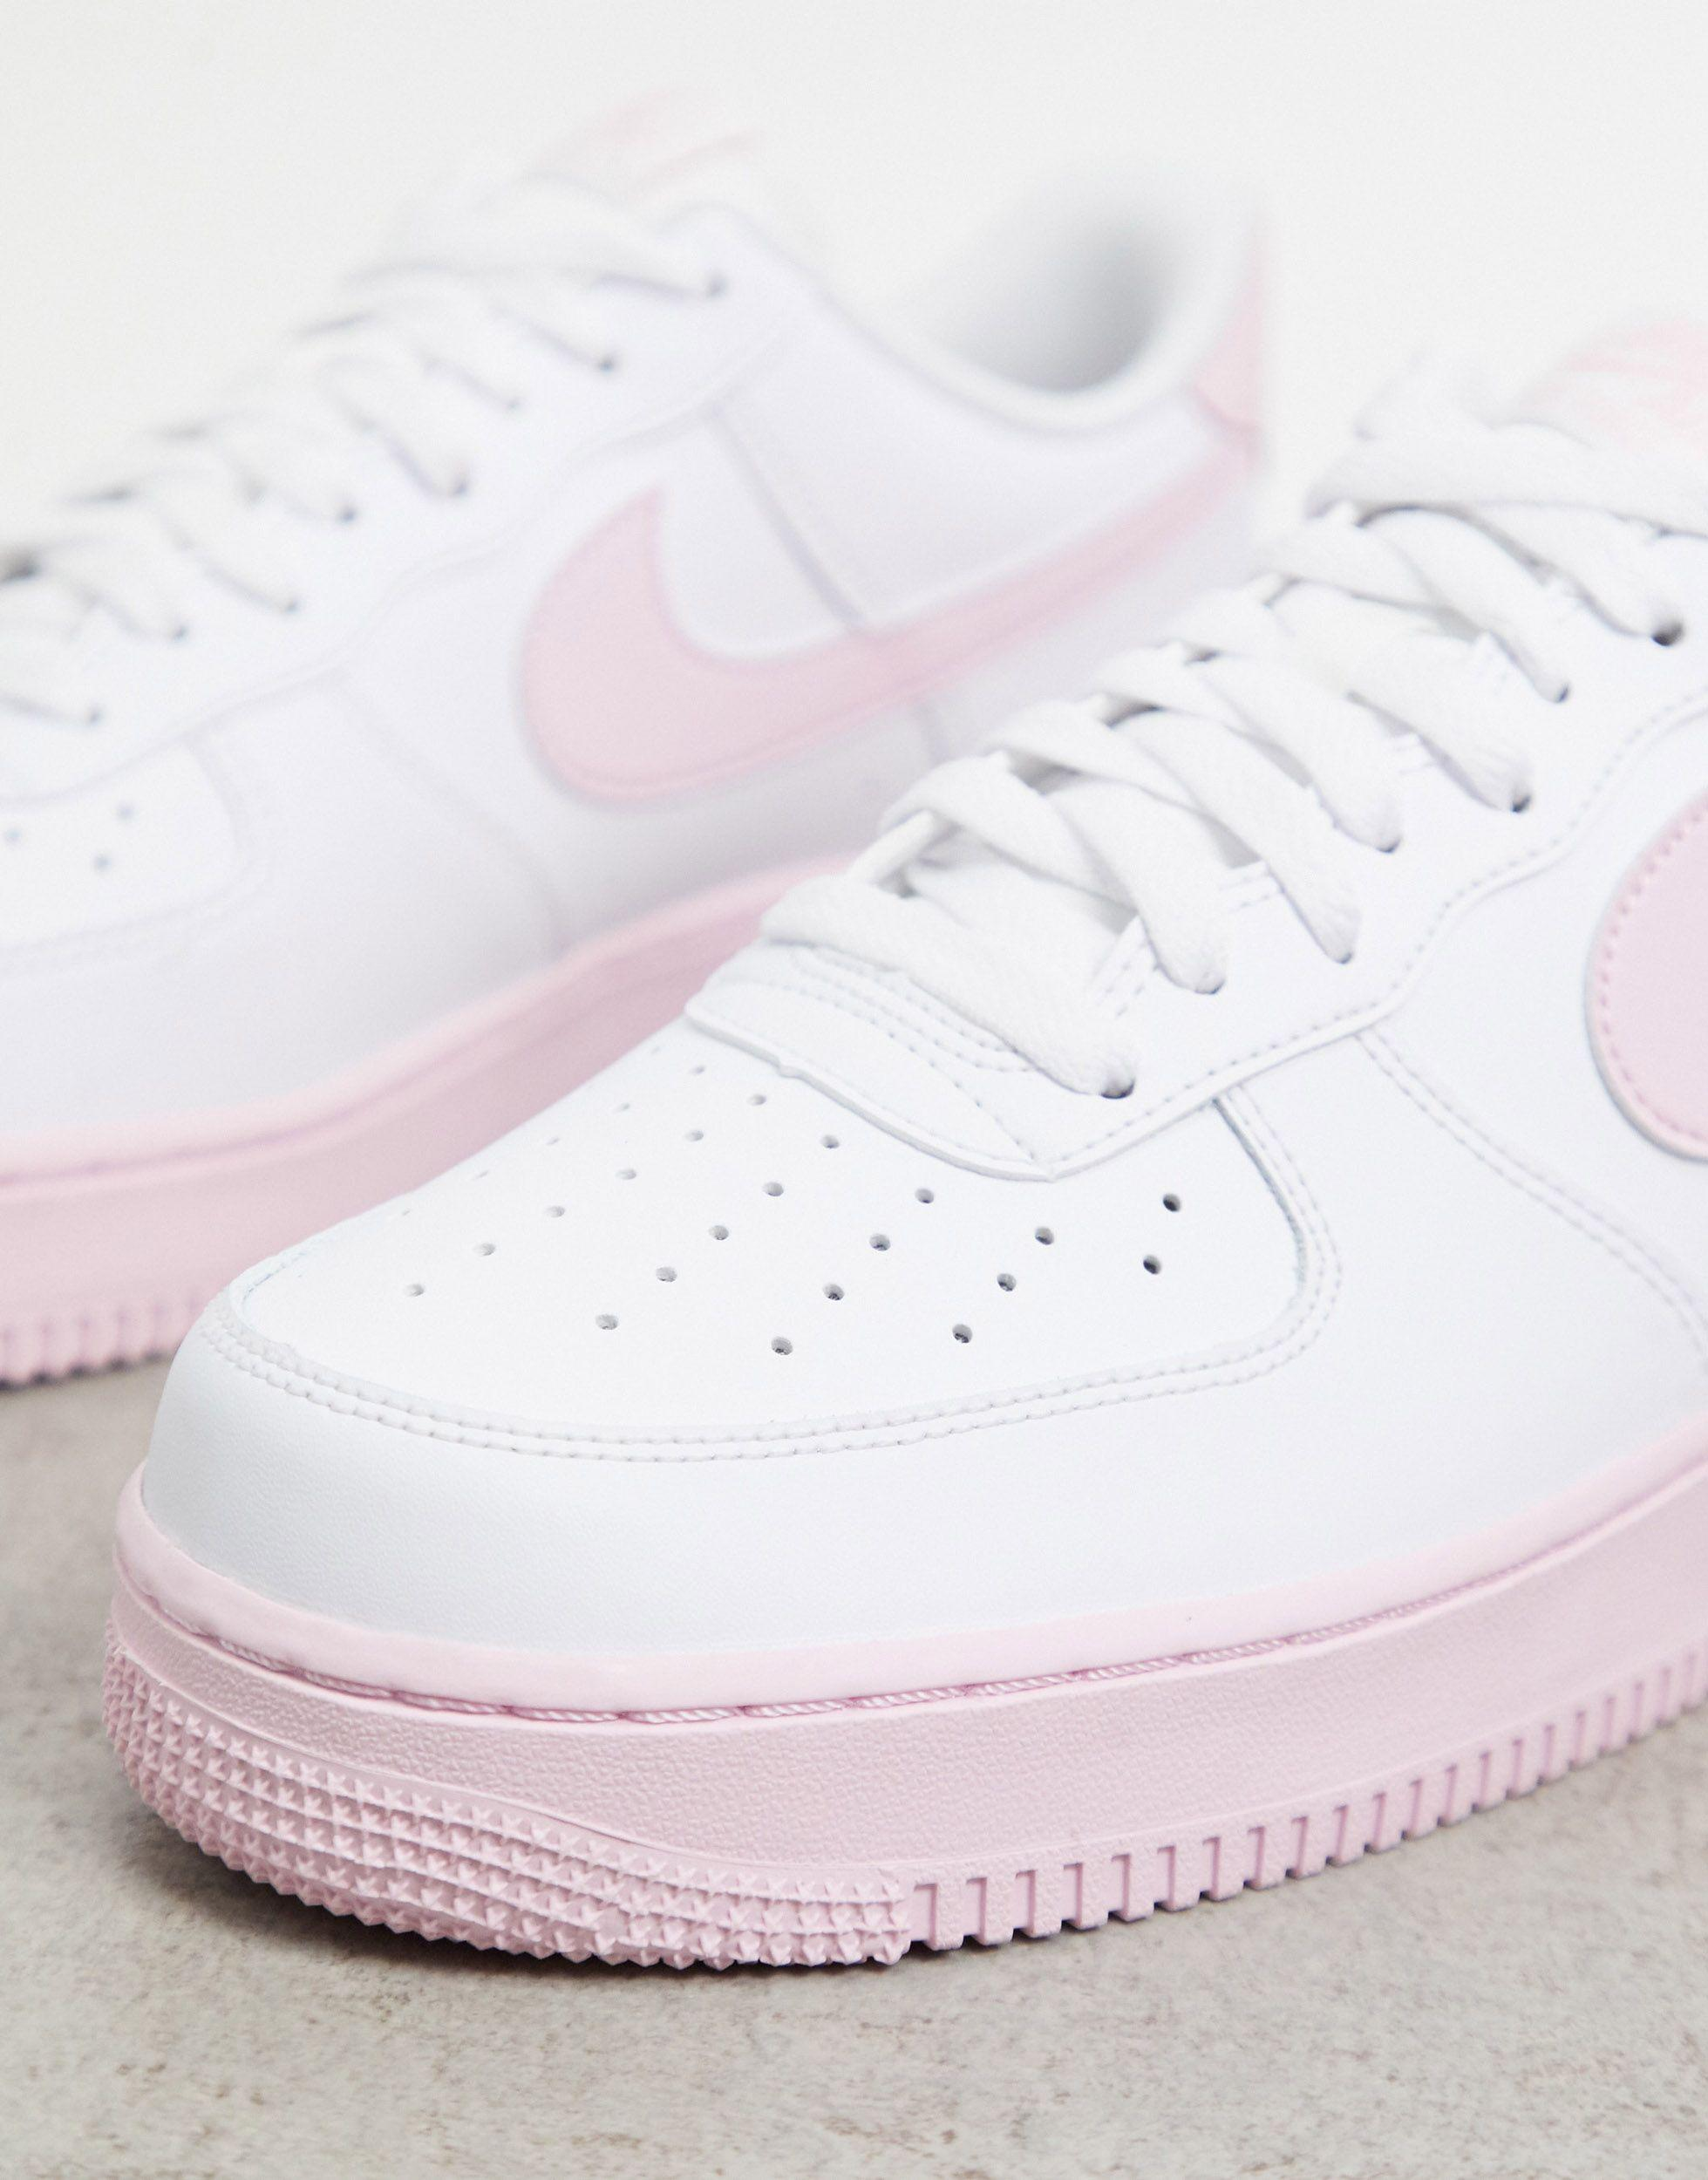 Nike Air Force 1 '07 Brick Trainers in White/Pink (White) for Men ...